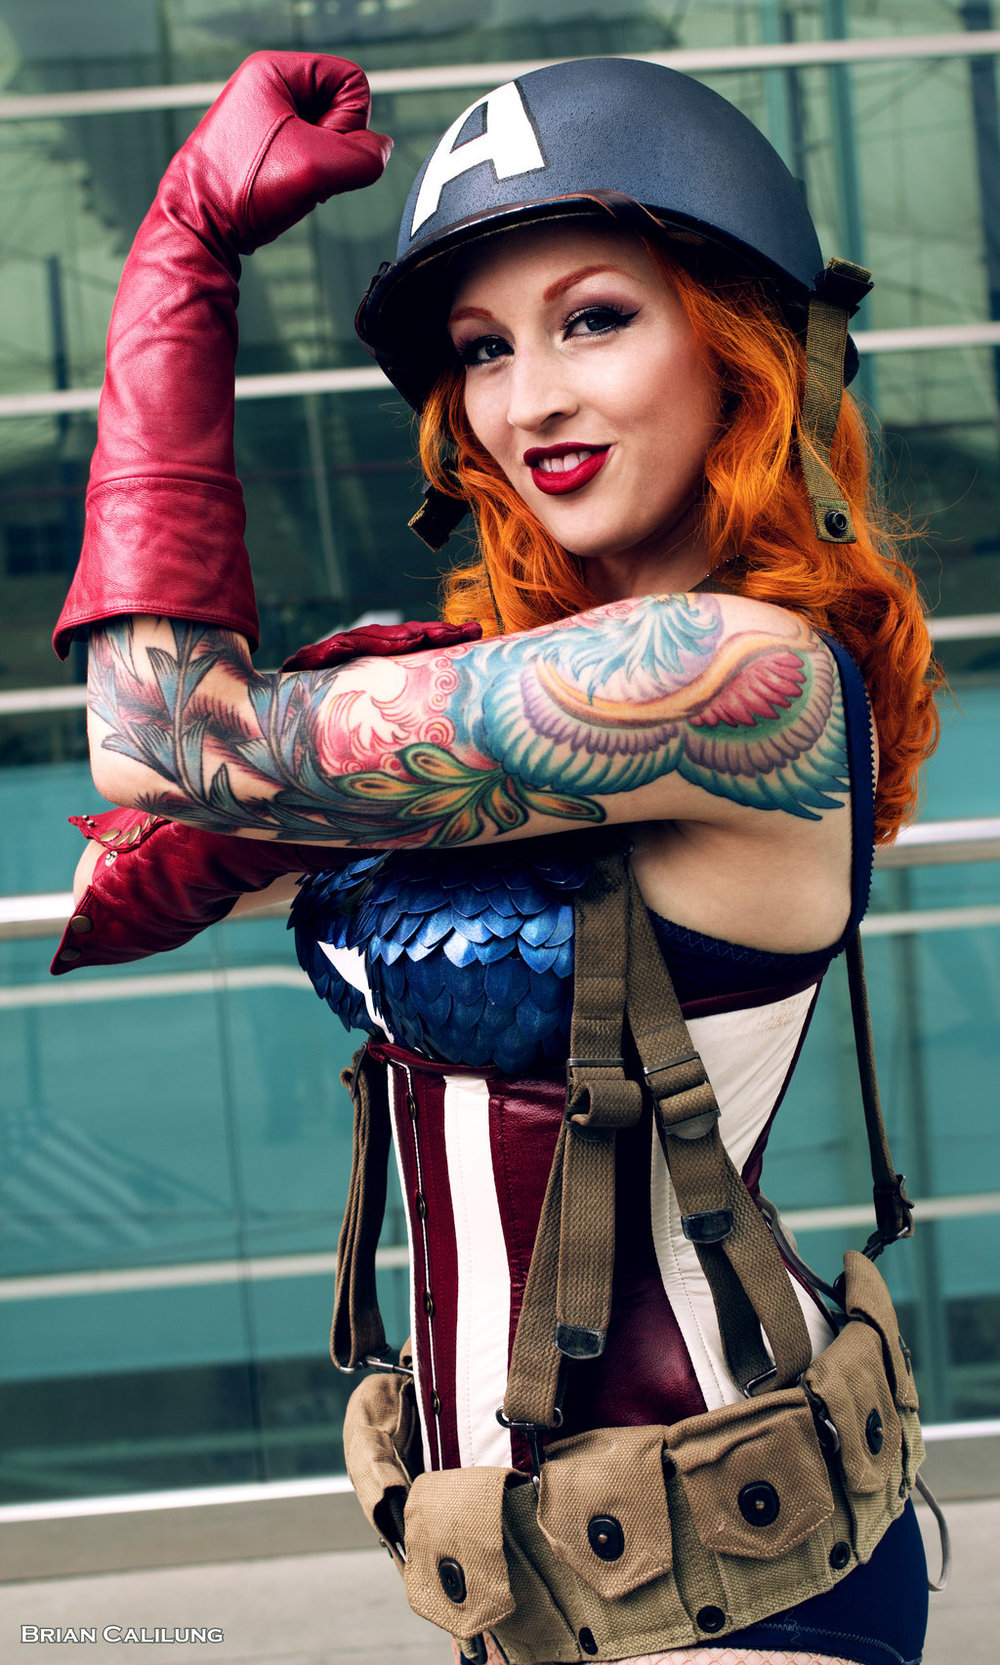 04-female_captain_america_by_briancalilung-d6gkgd4.jpg